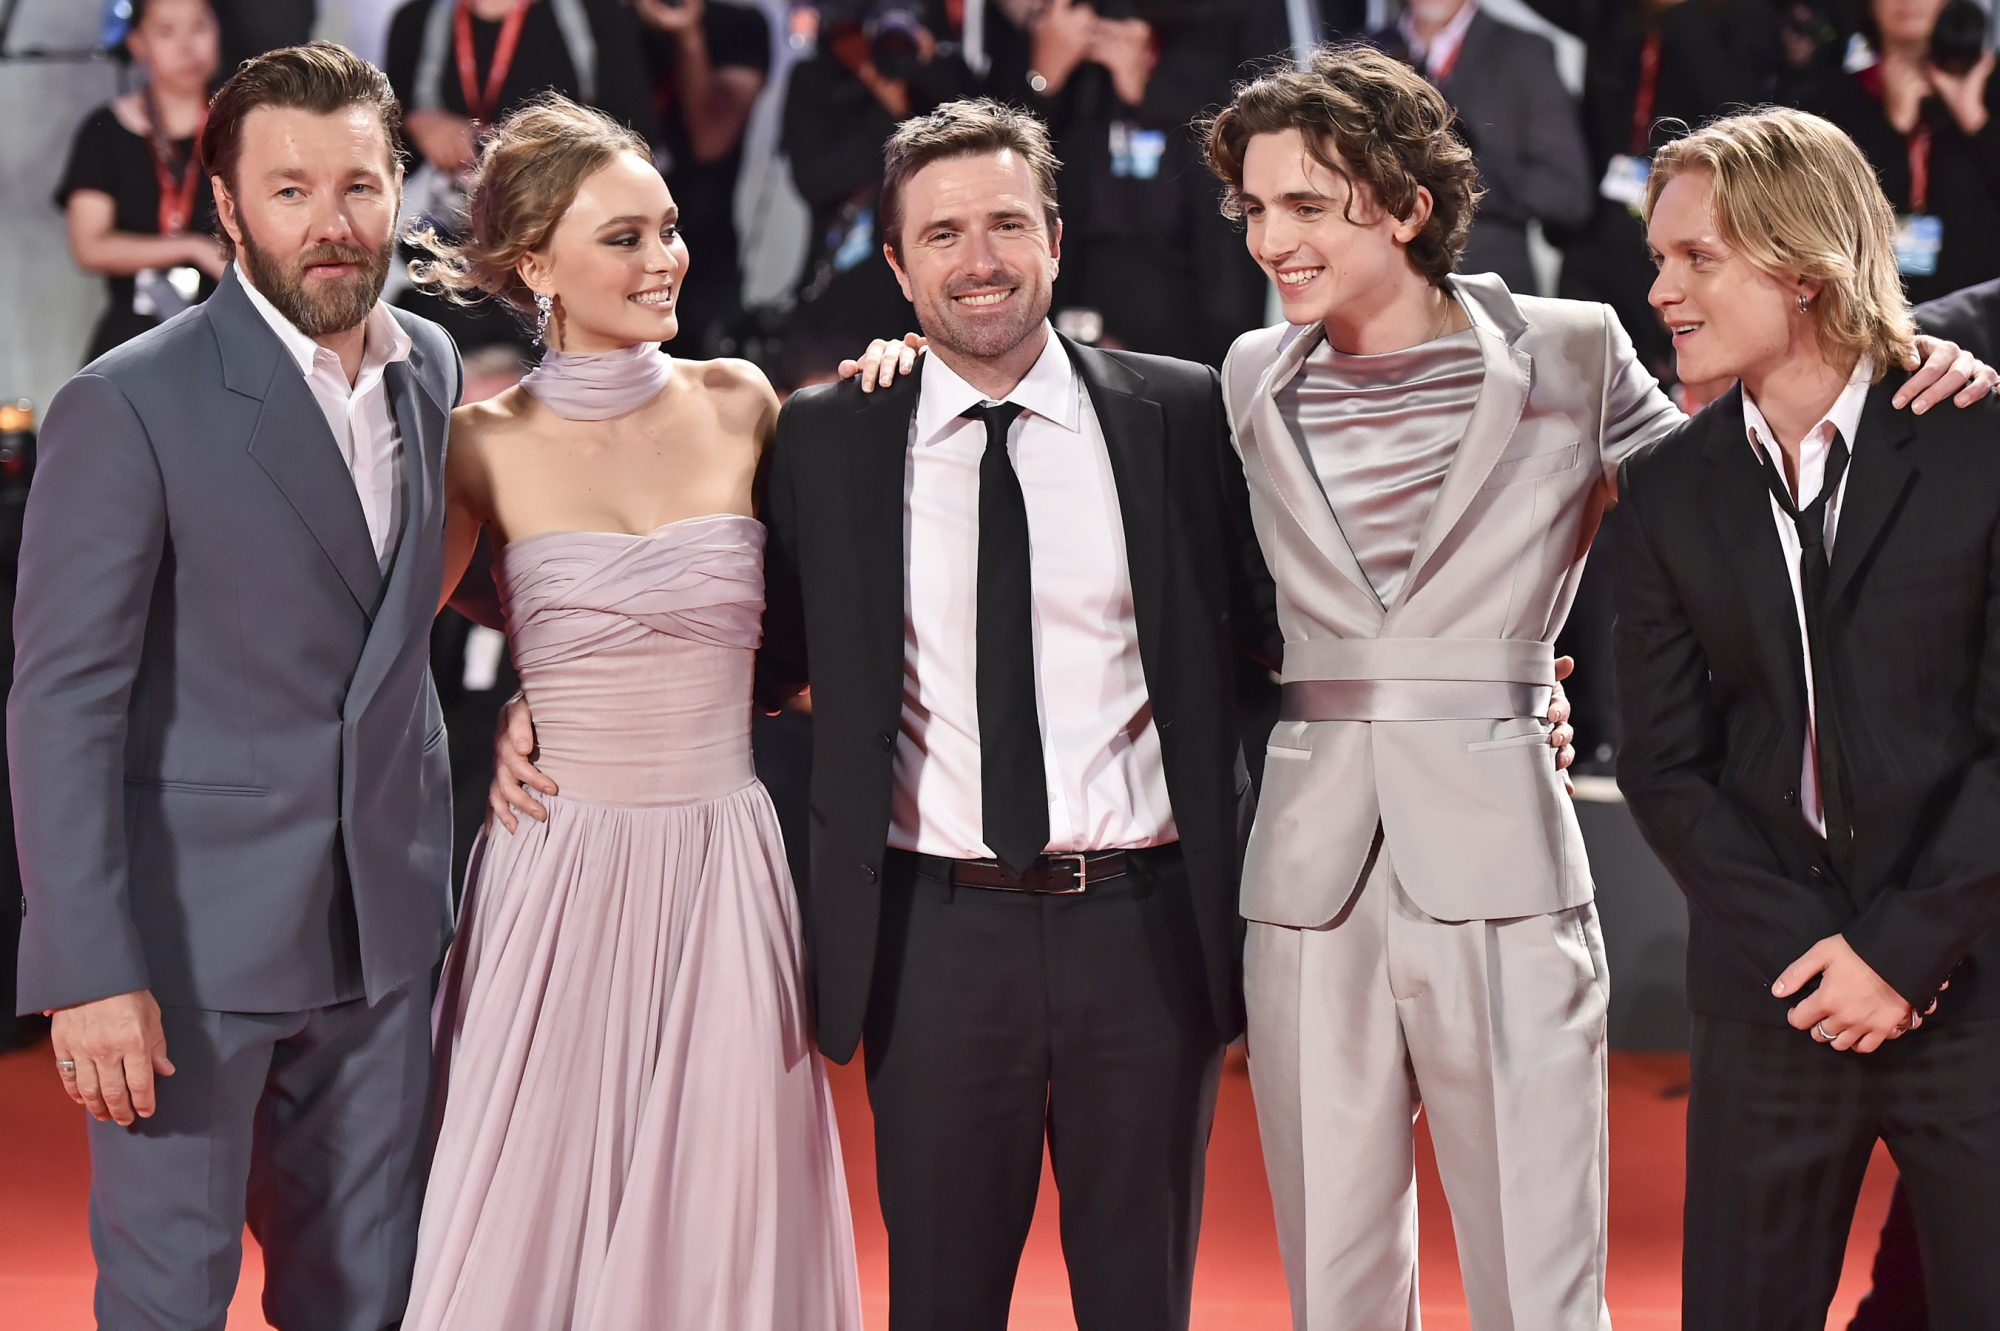 "VENICE, ITALY - SEPTEMBER 02: (R-L) Tom Glynn-Carney, Timothée Chalamet, director David Michod, Lily-Rose Depp and Joel Edgerton attend ""The King"" red carpet during the 76th Venice Film Festival at Sala Grande on September 02, 2019 in Venice, Italy. (Photo by Theo Wargo/Getty Images)"